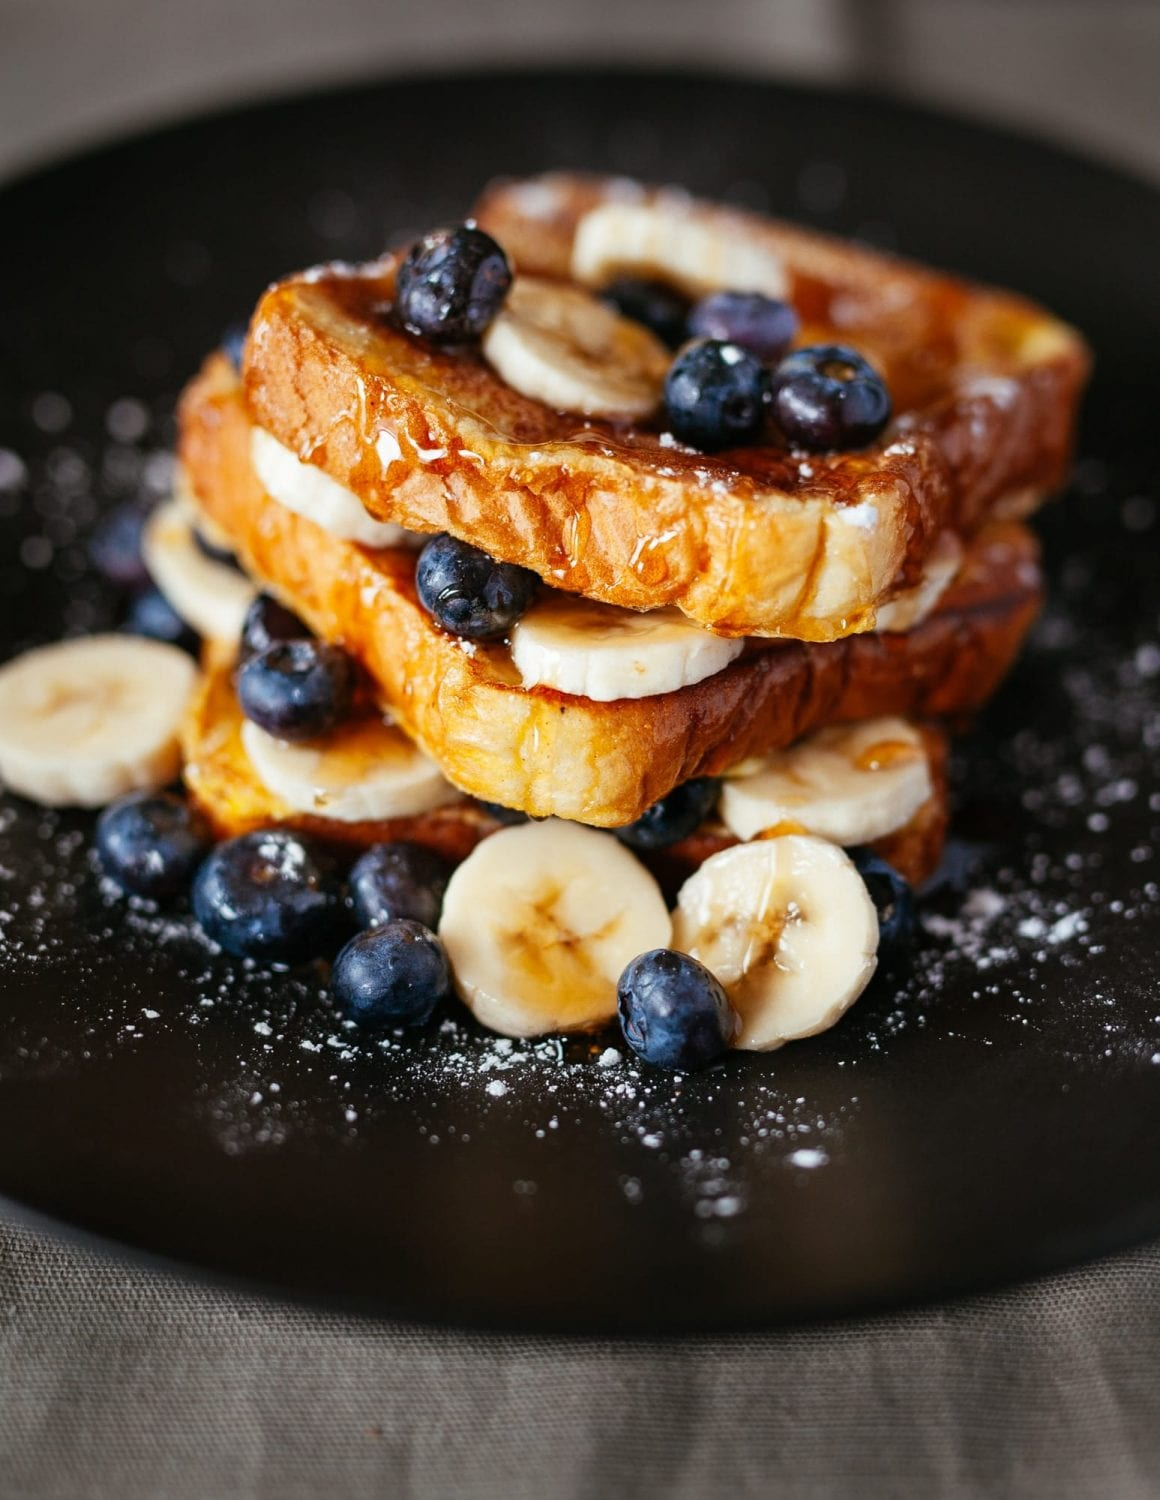 french toast on a black plate with blueberries, bananas, sugar